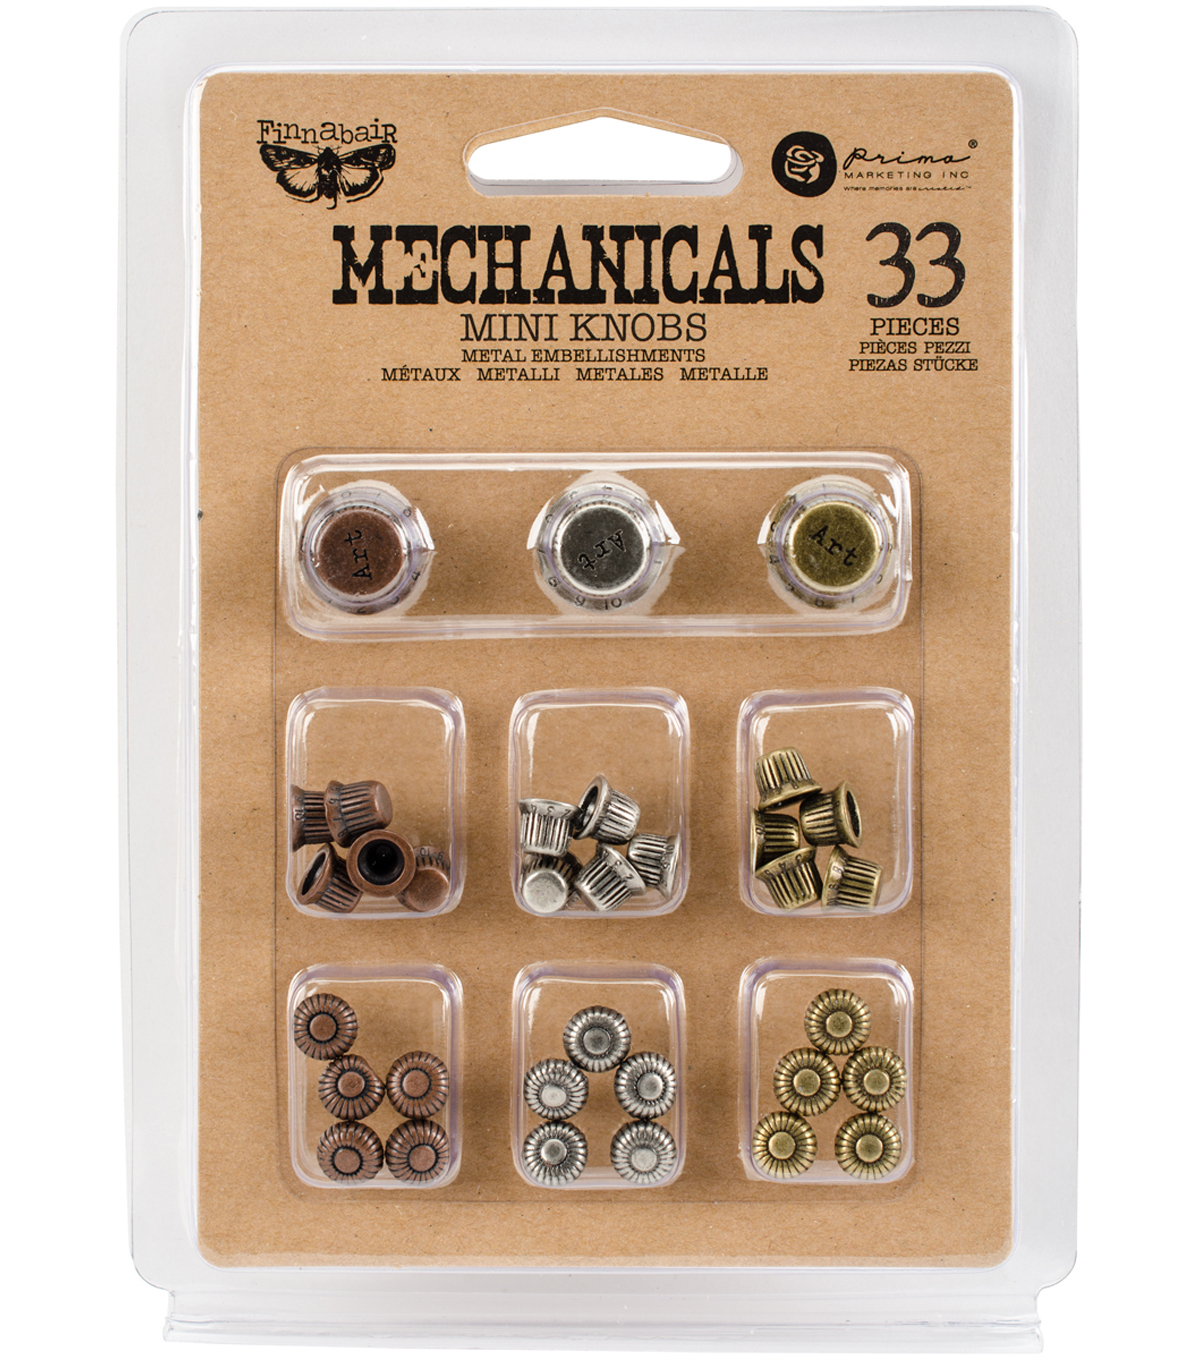 Prima Marketing Finnabair Mechanicals 33 pk Metal Mini Knobs